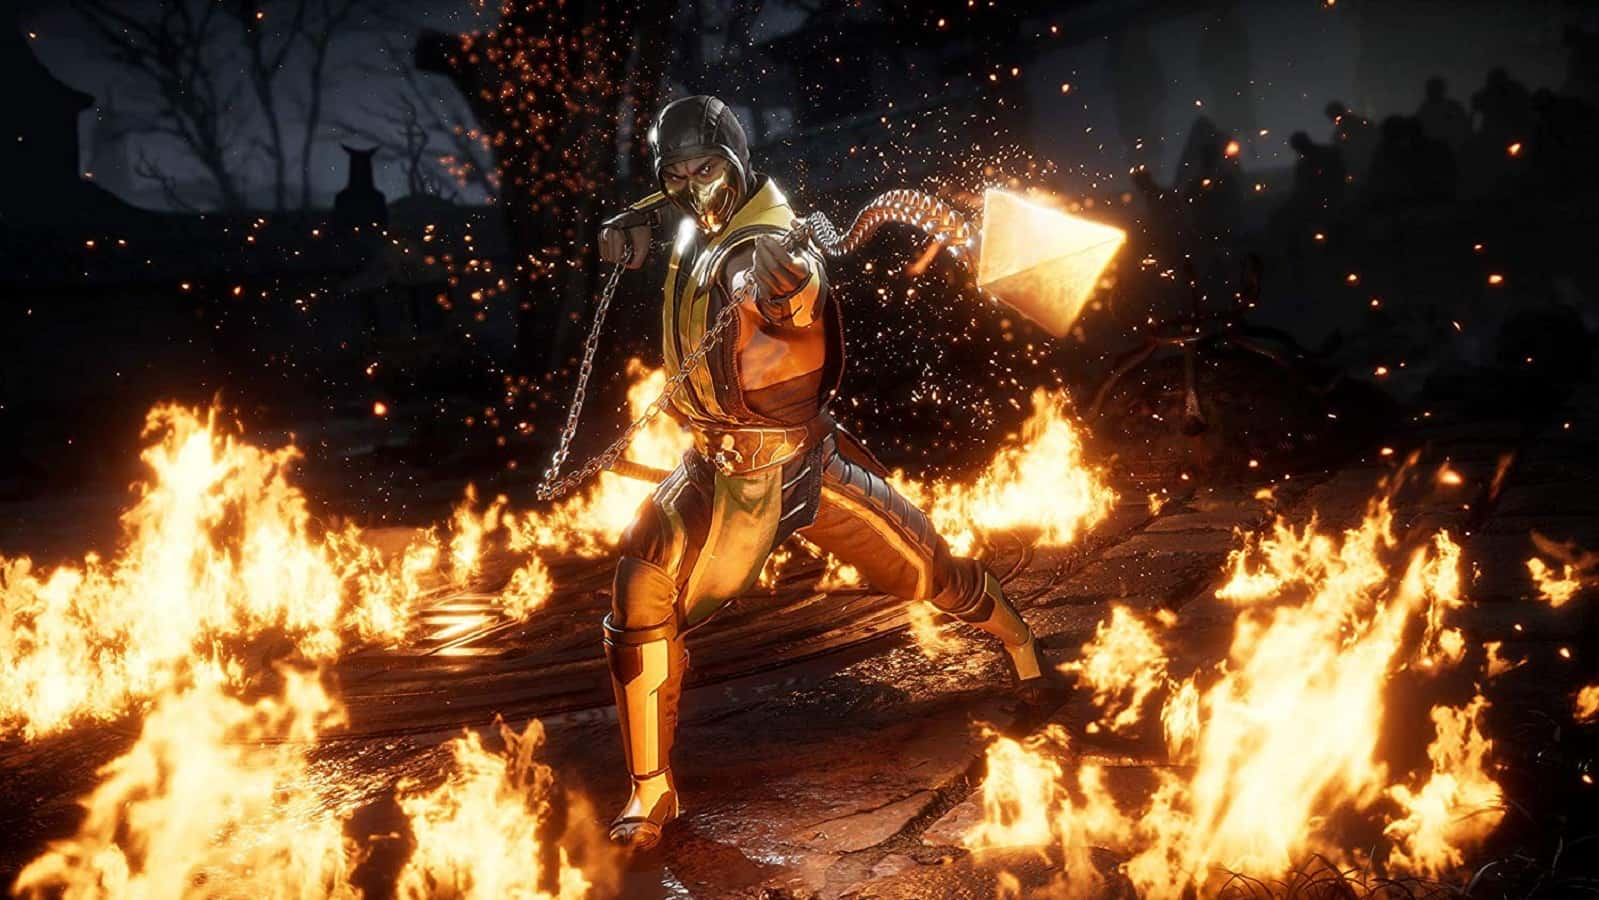 mortal kombat 11 showing off scorpion